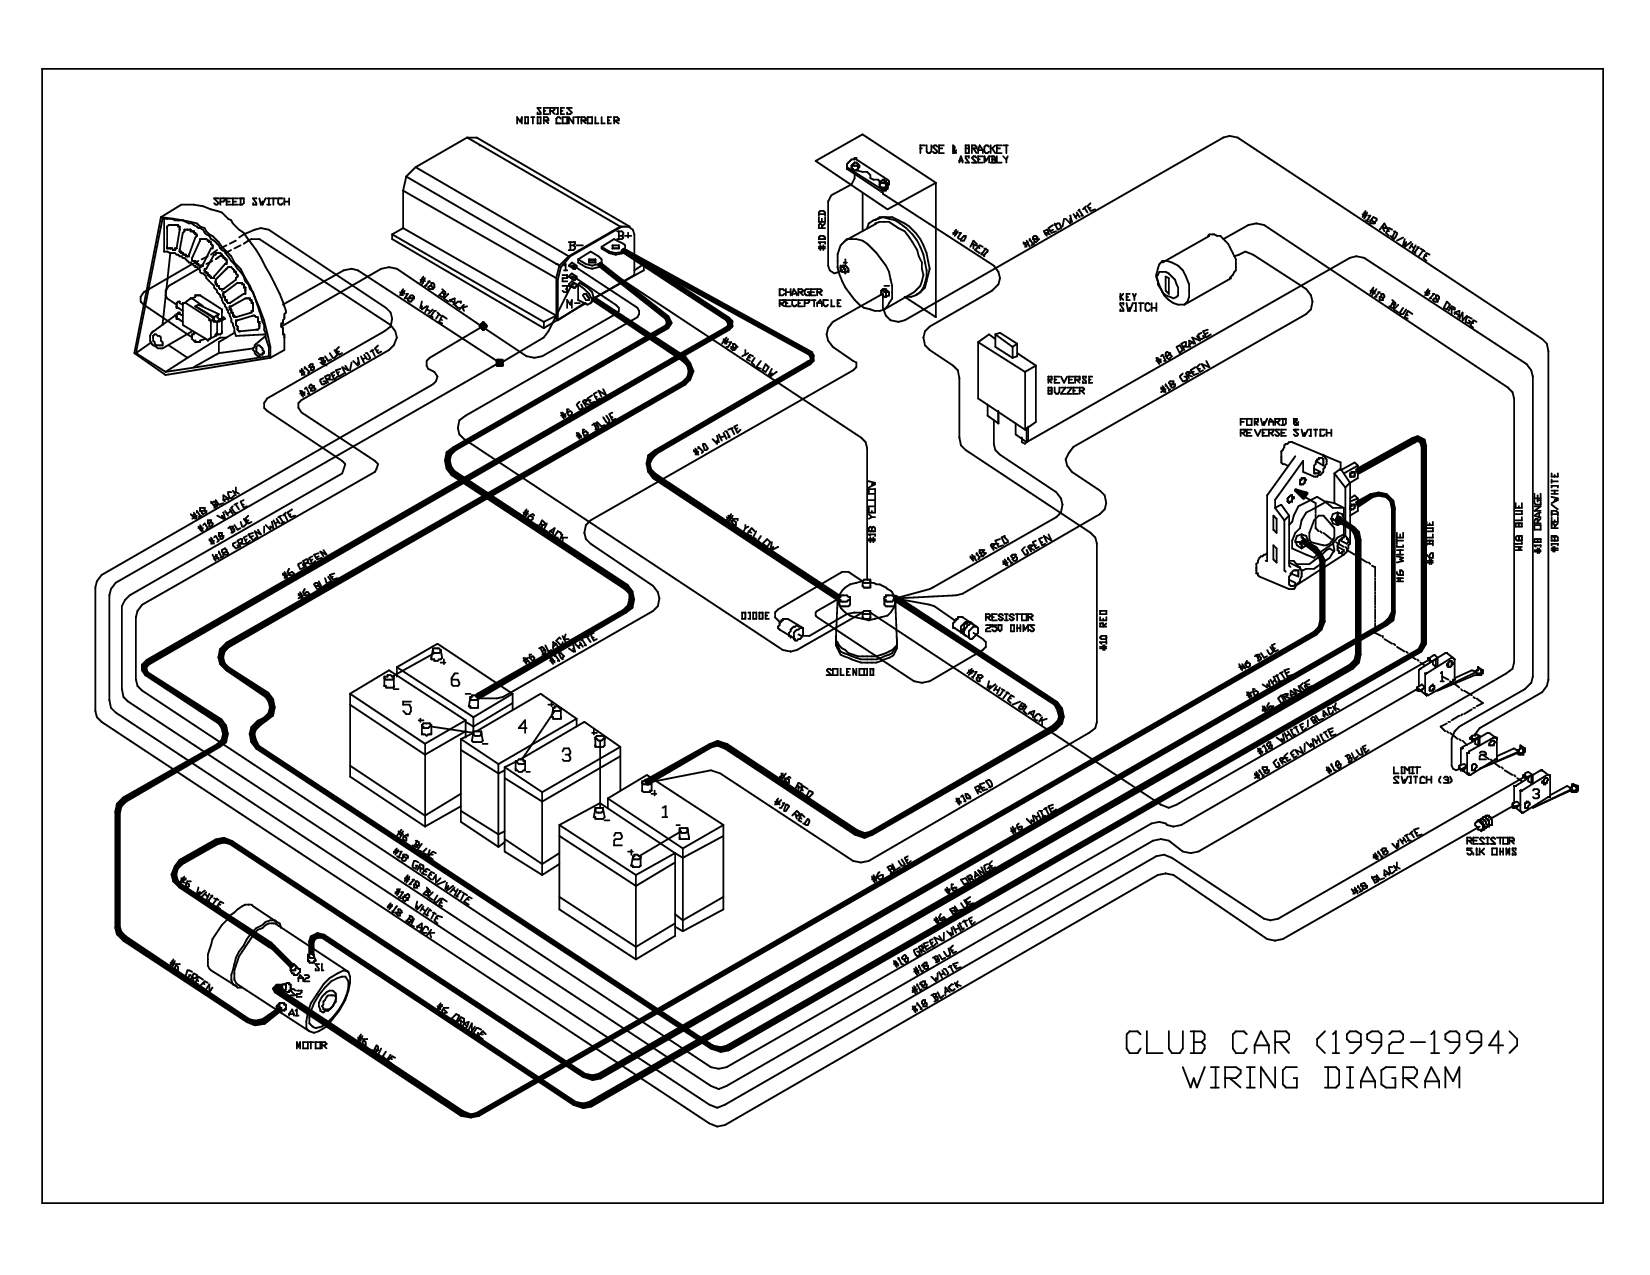 48 Volt Club Car Wiring Diagram Wiring Site Resource